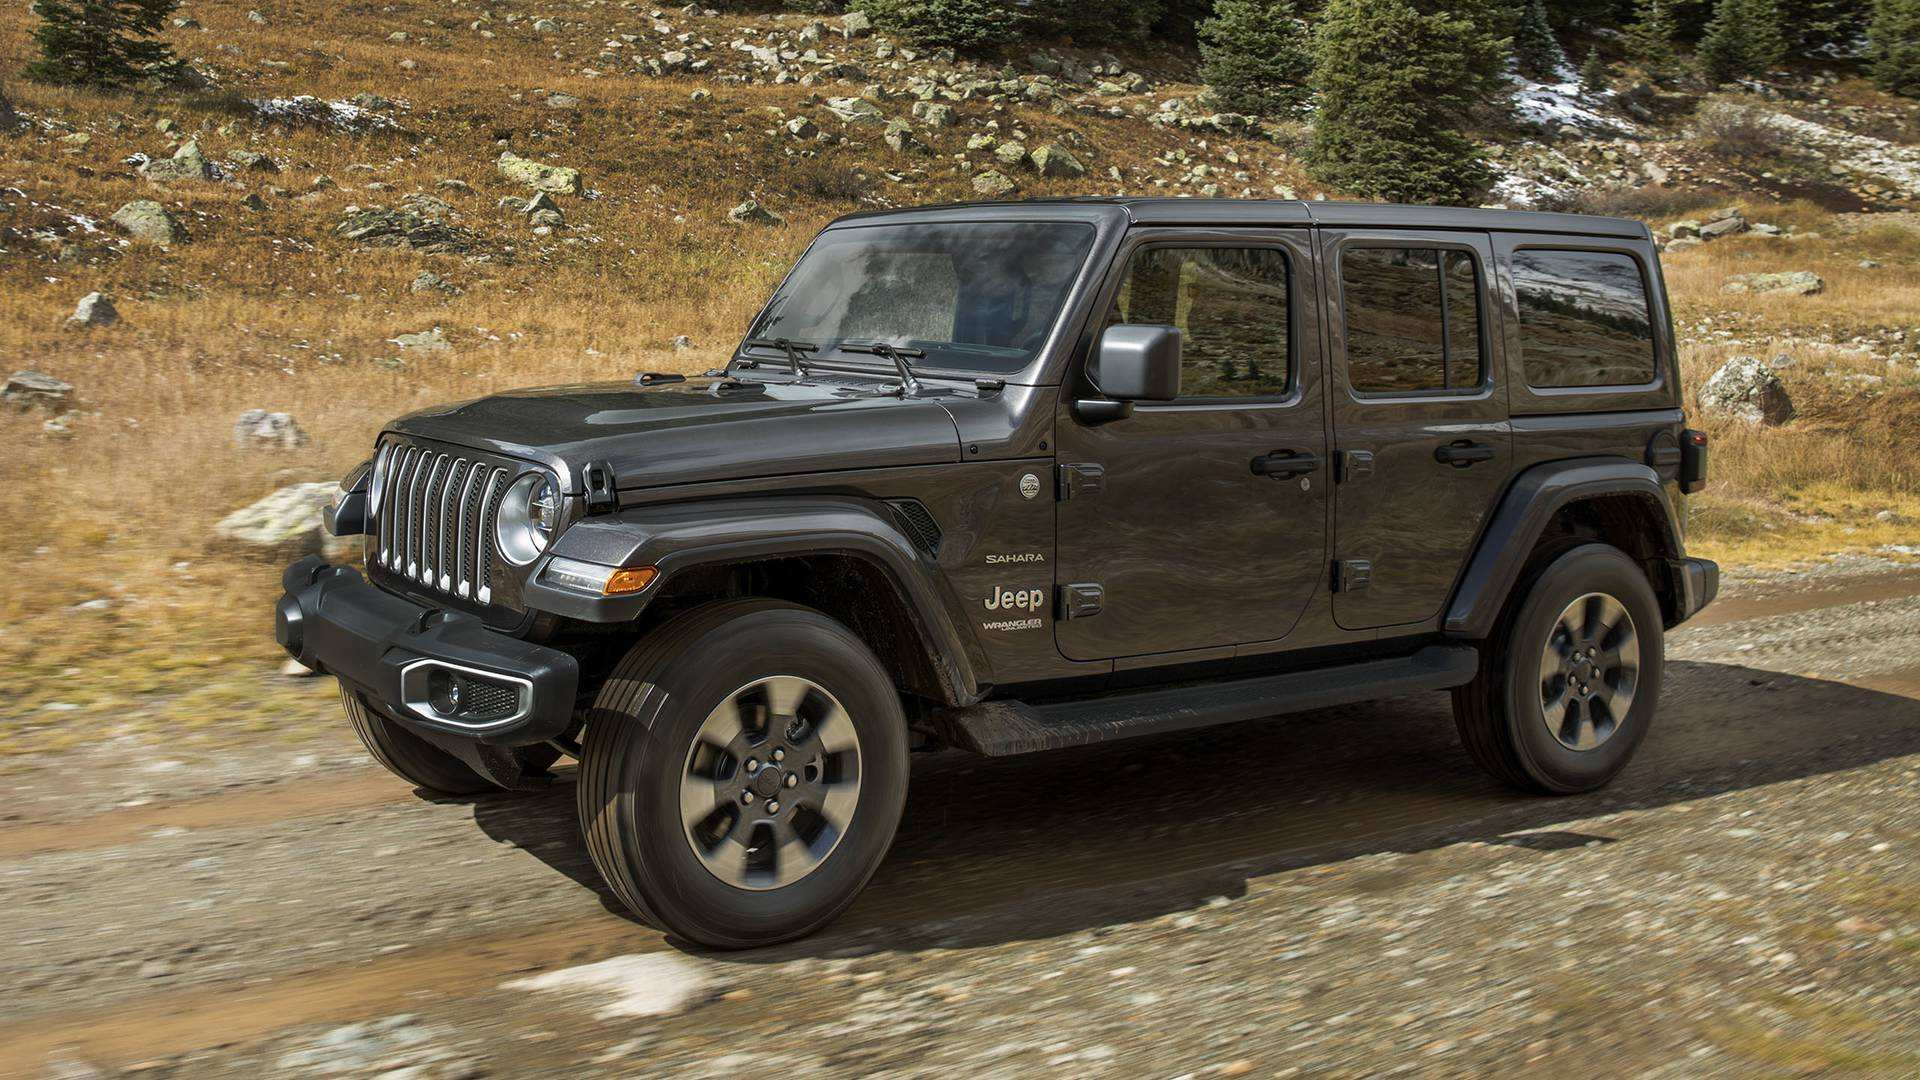 45 All New Jeep Hybrid 2020 Pictures for Jeep Hybrid 2020